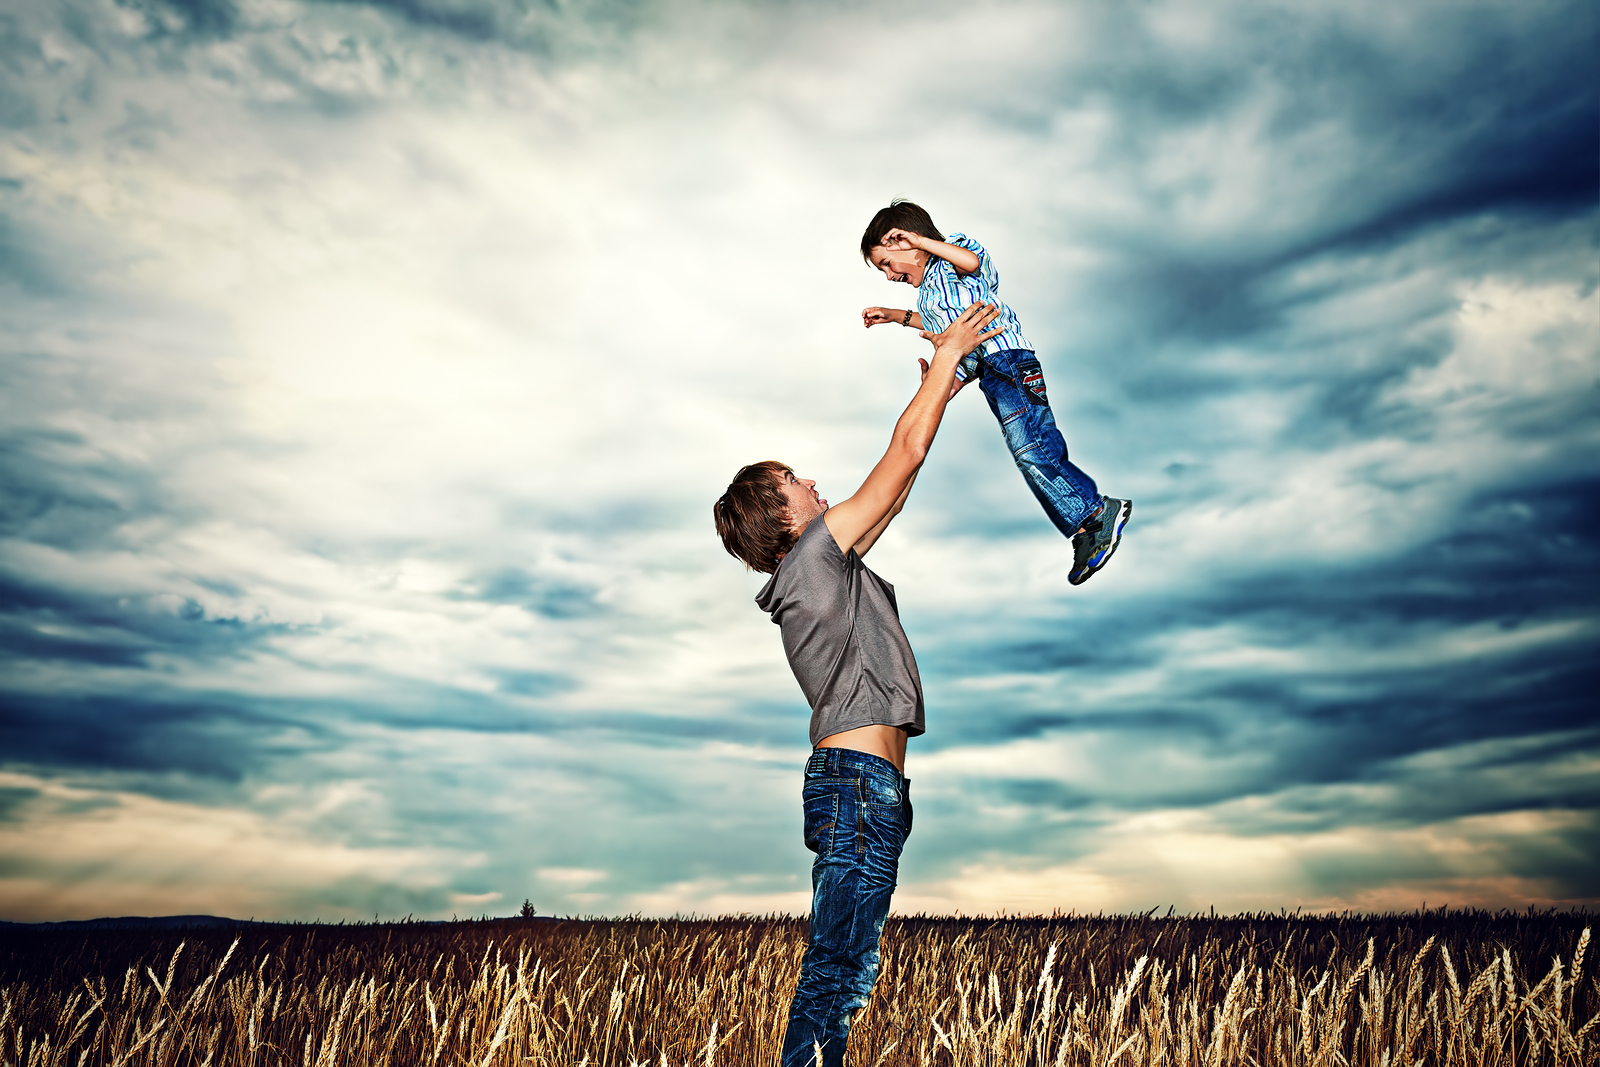 Fathering Tips for the New School Year